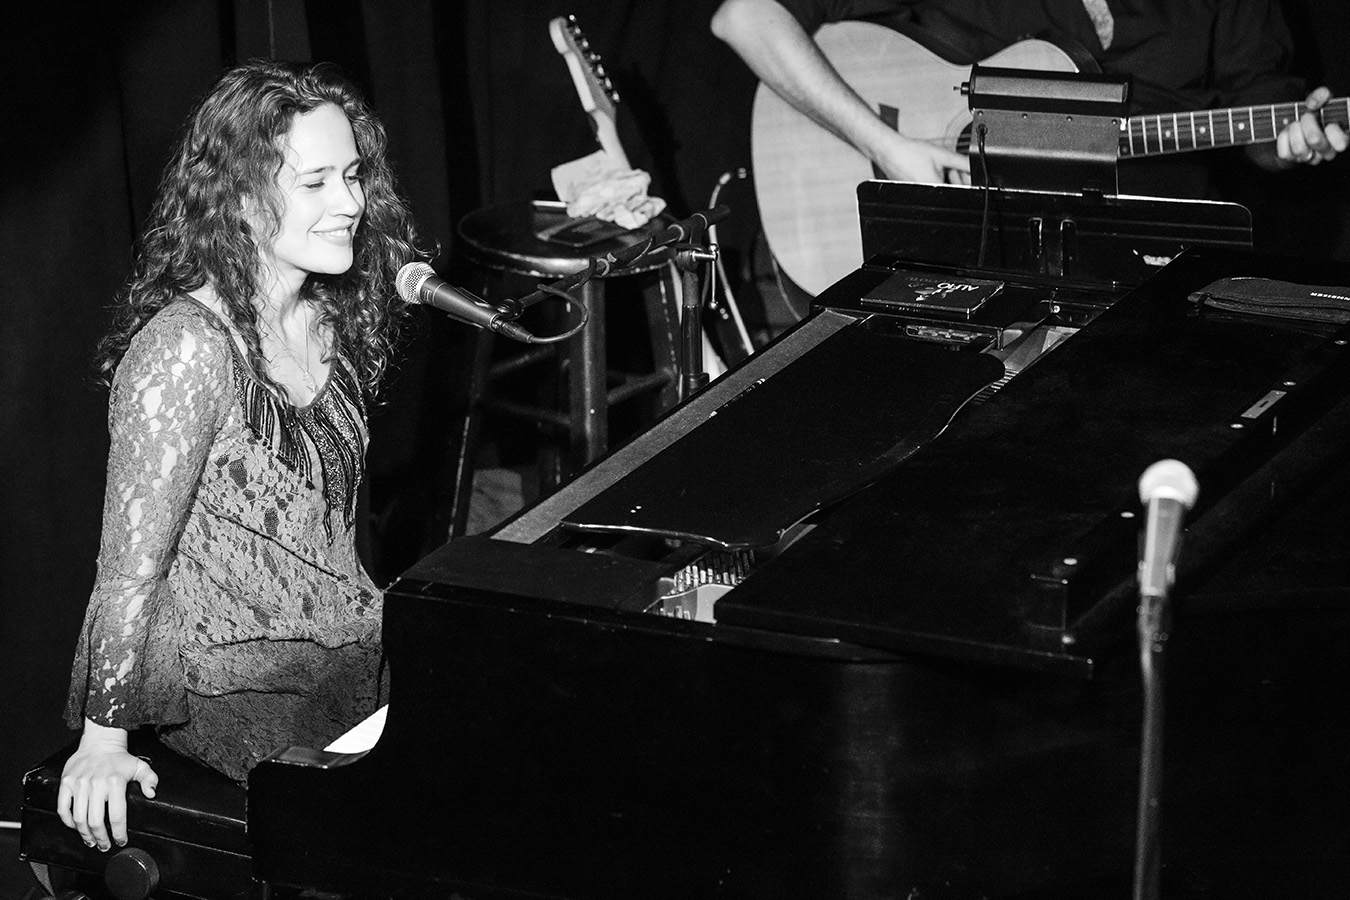 Photo: black & white image, by Photographer Margaret Yescombe, musician performing at piano, Natalie Smith, Upper Manhattan NYC New York